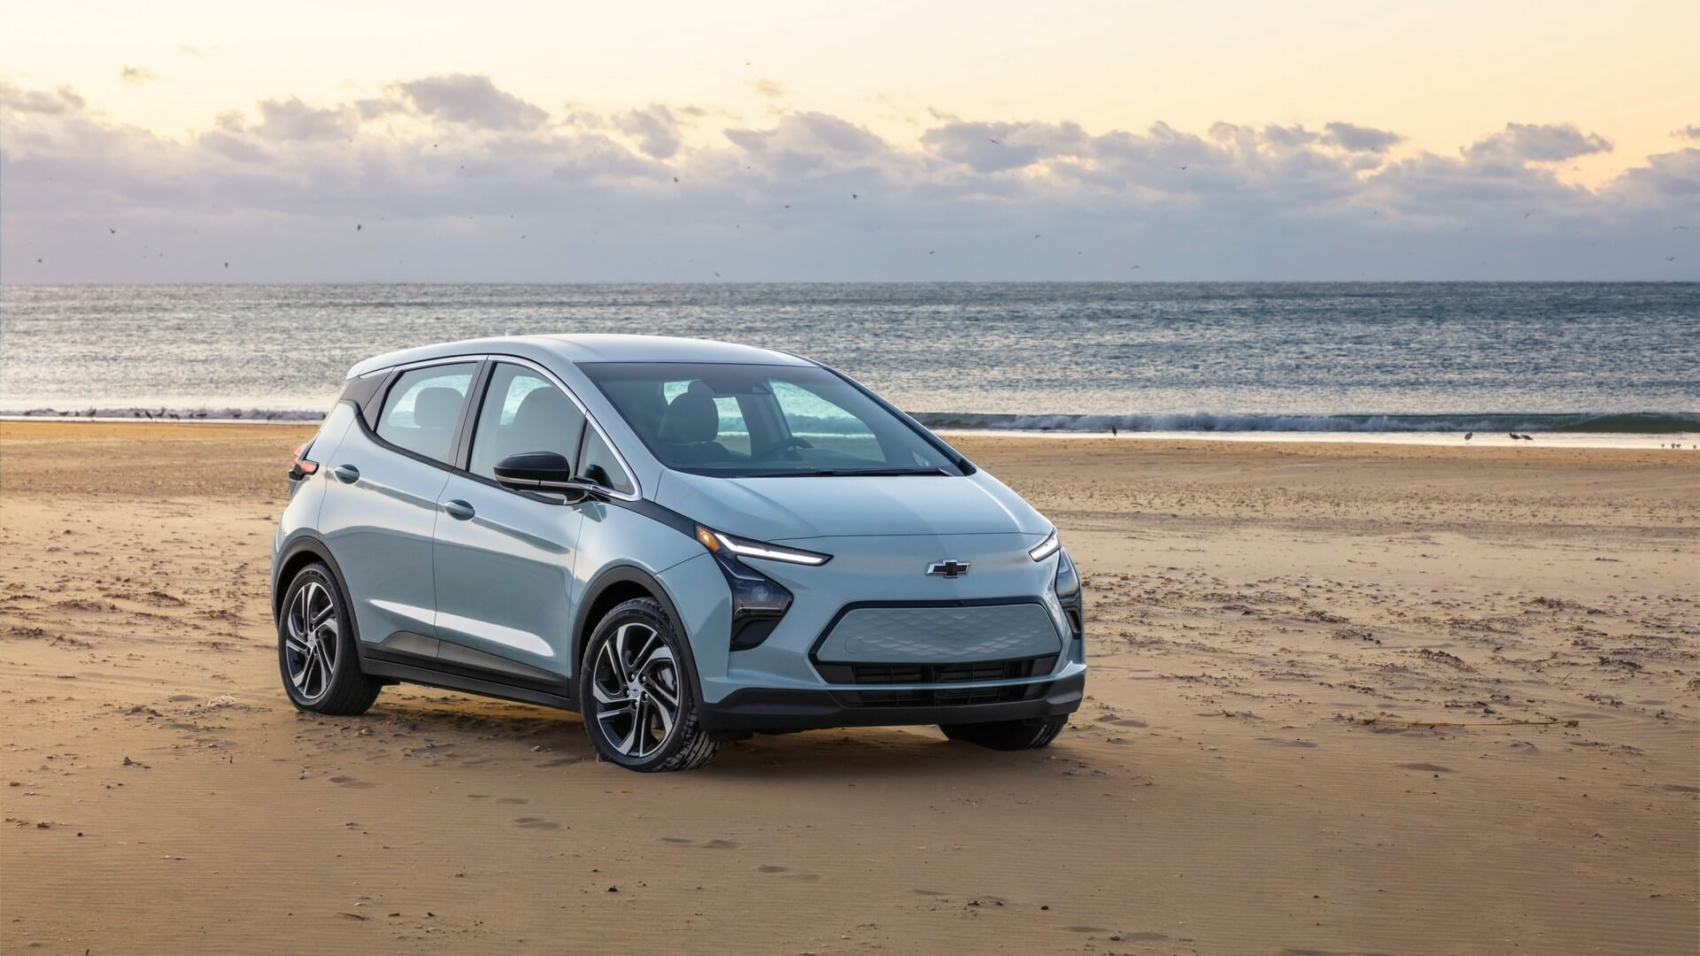 2022 Chevy Bolt facelift